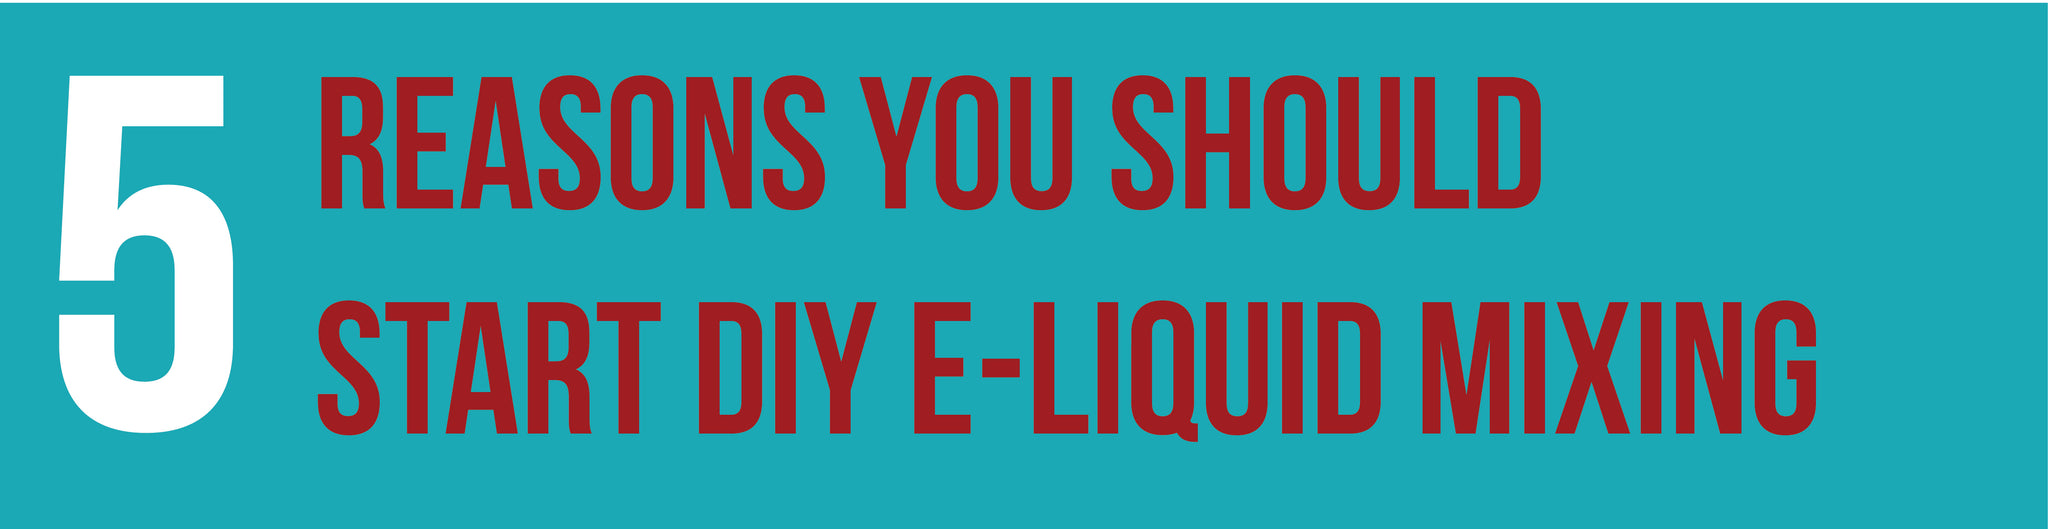 5 reasons you should start DIY e-liquid mixing